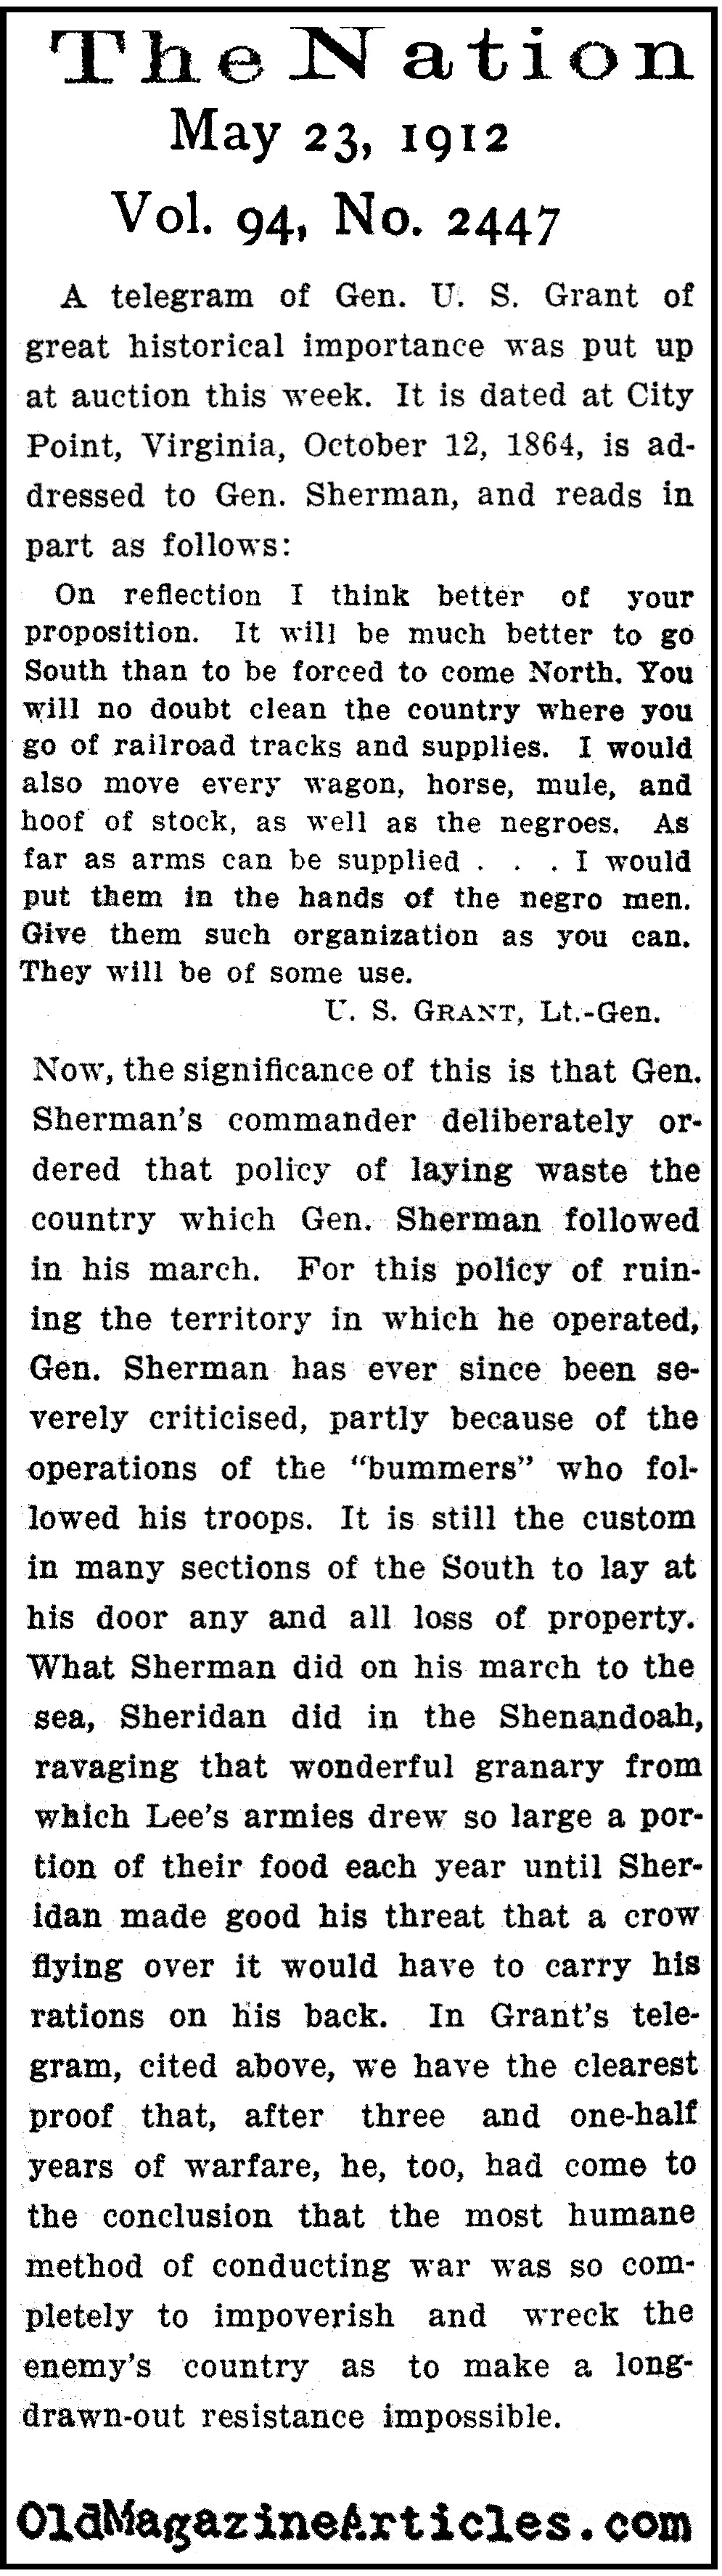 An Historic Telegram Addressed to General Sherman  (The Nation, 1912)